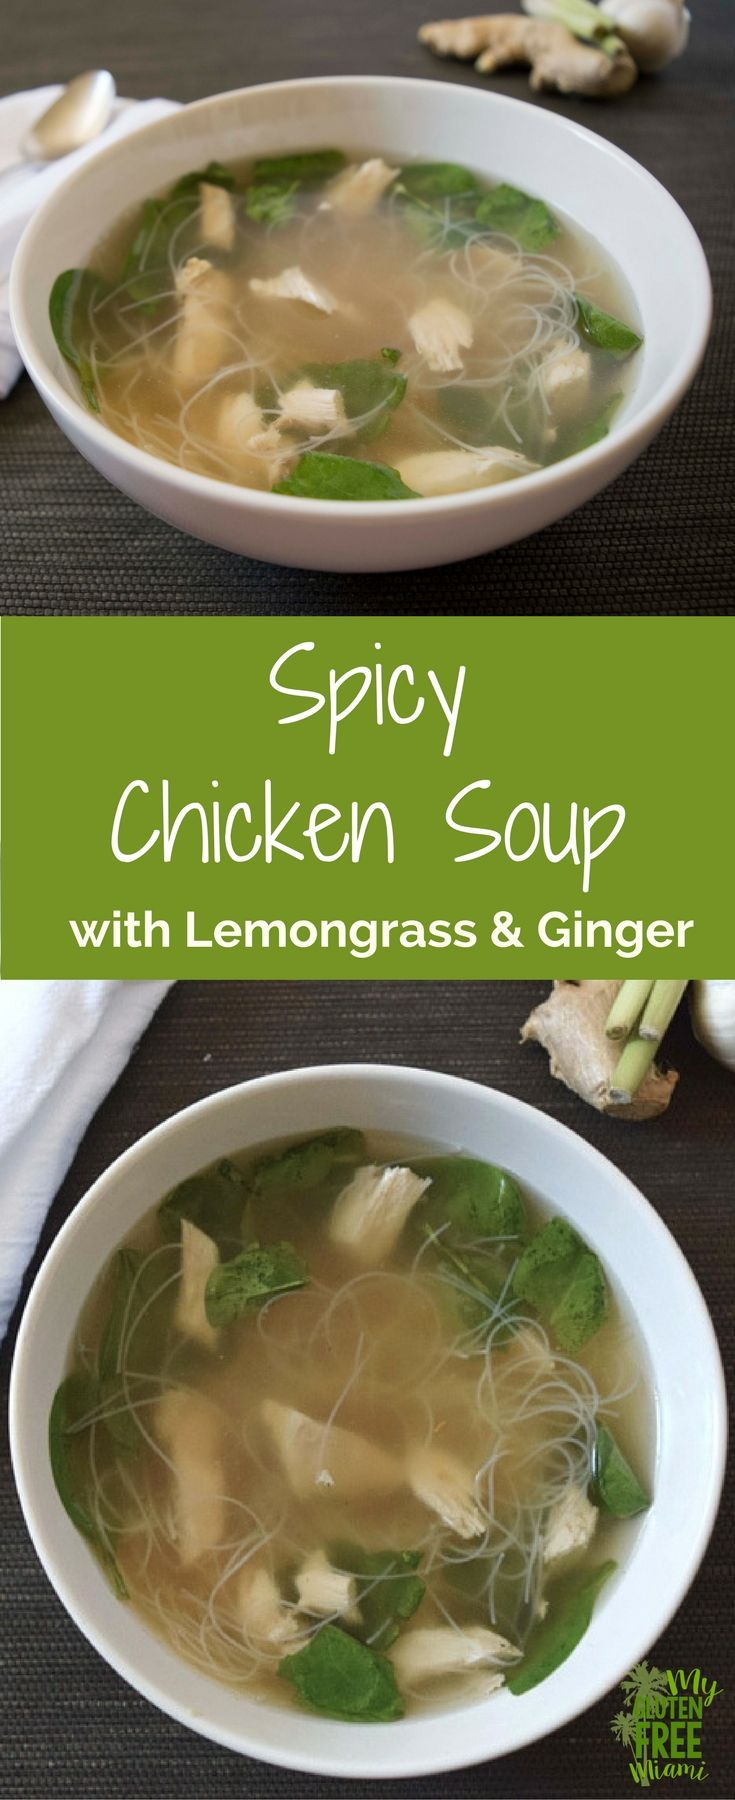 Spicy Chicken Soup made with lemongrass, ginger and just a hint of red pepper, it will have you feeling warm all over. via @GLUTENFREEMIAMI